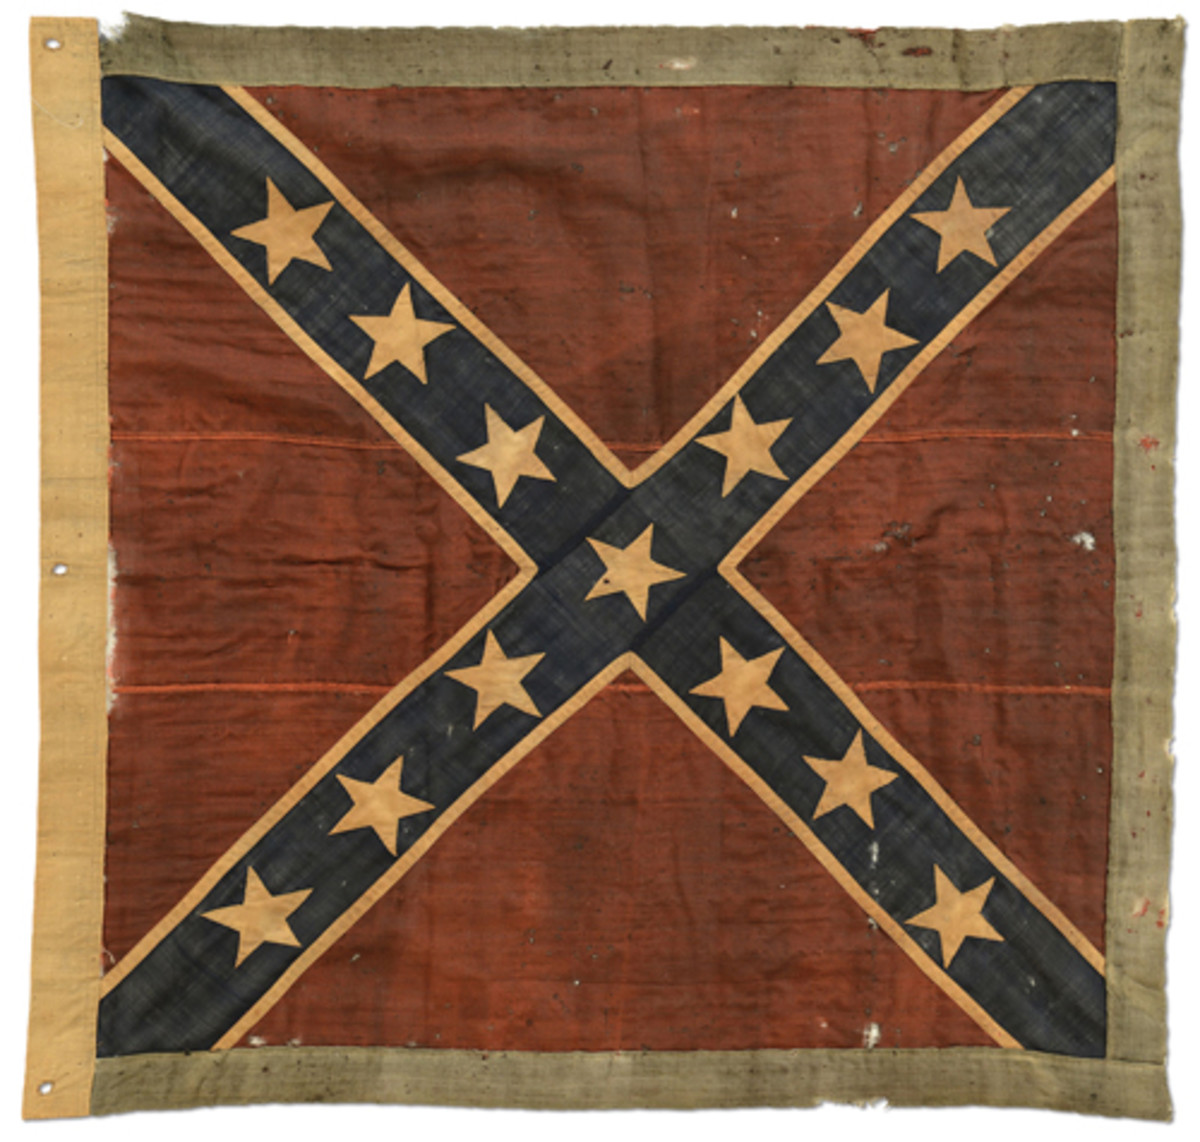 Fine & Historic Army of Northern Virginia Battle Flag carried by Tucker's Naval Brigade at Battle of Sailor's Creek, one of the last engagements of the Civil War, sold for $109,250.